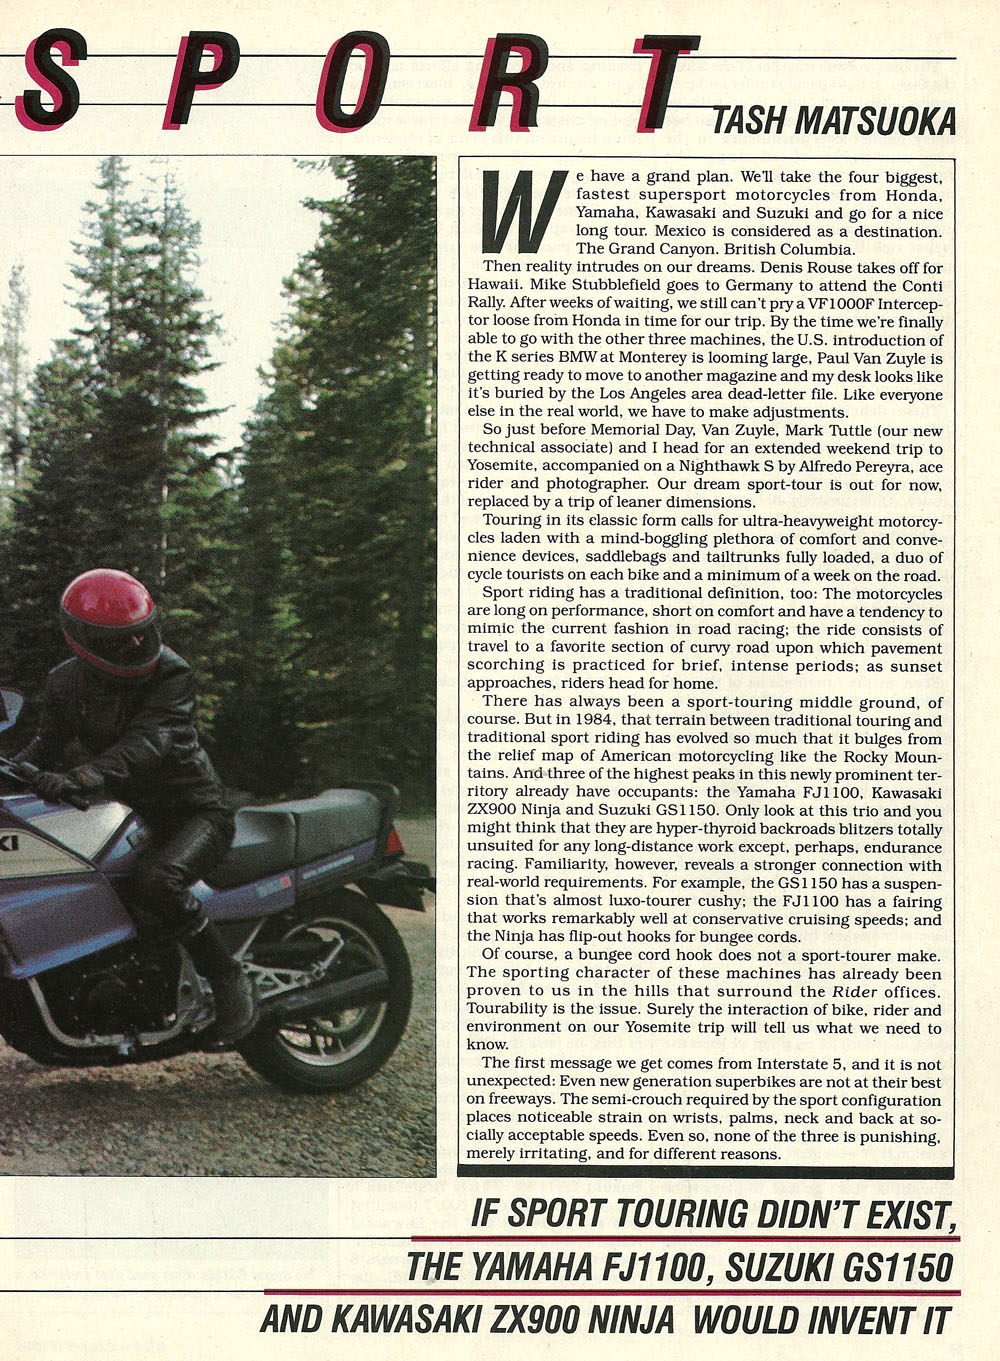 1984 fj1100 zx900 gs1150 road test 02.jpg